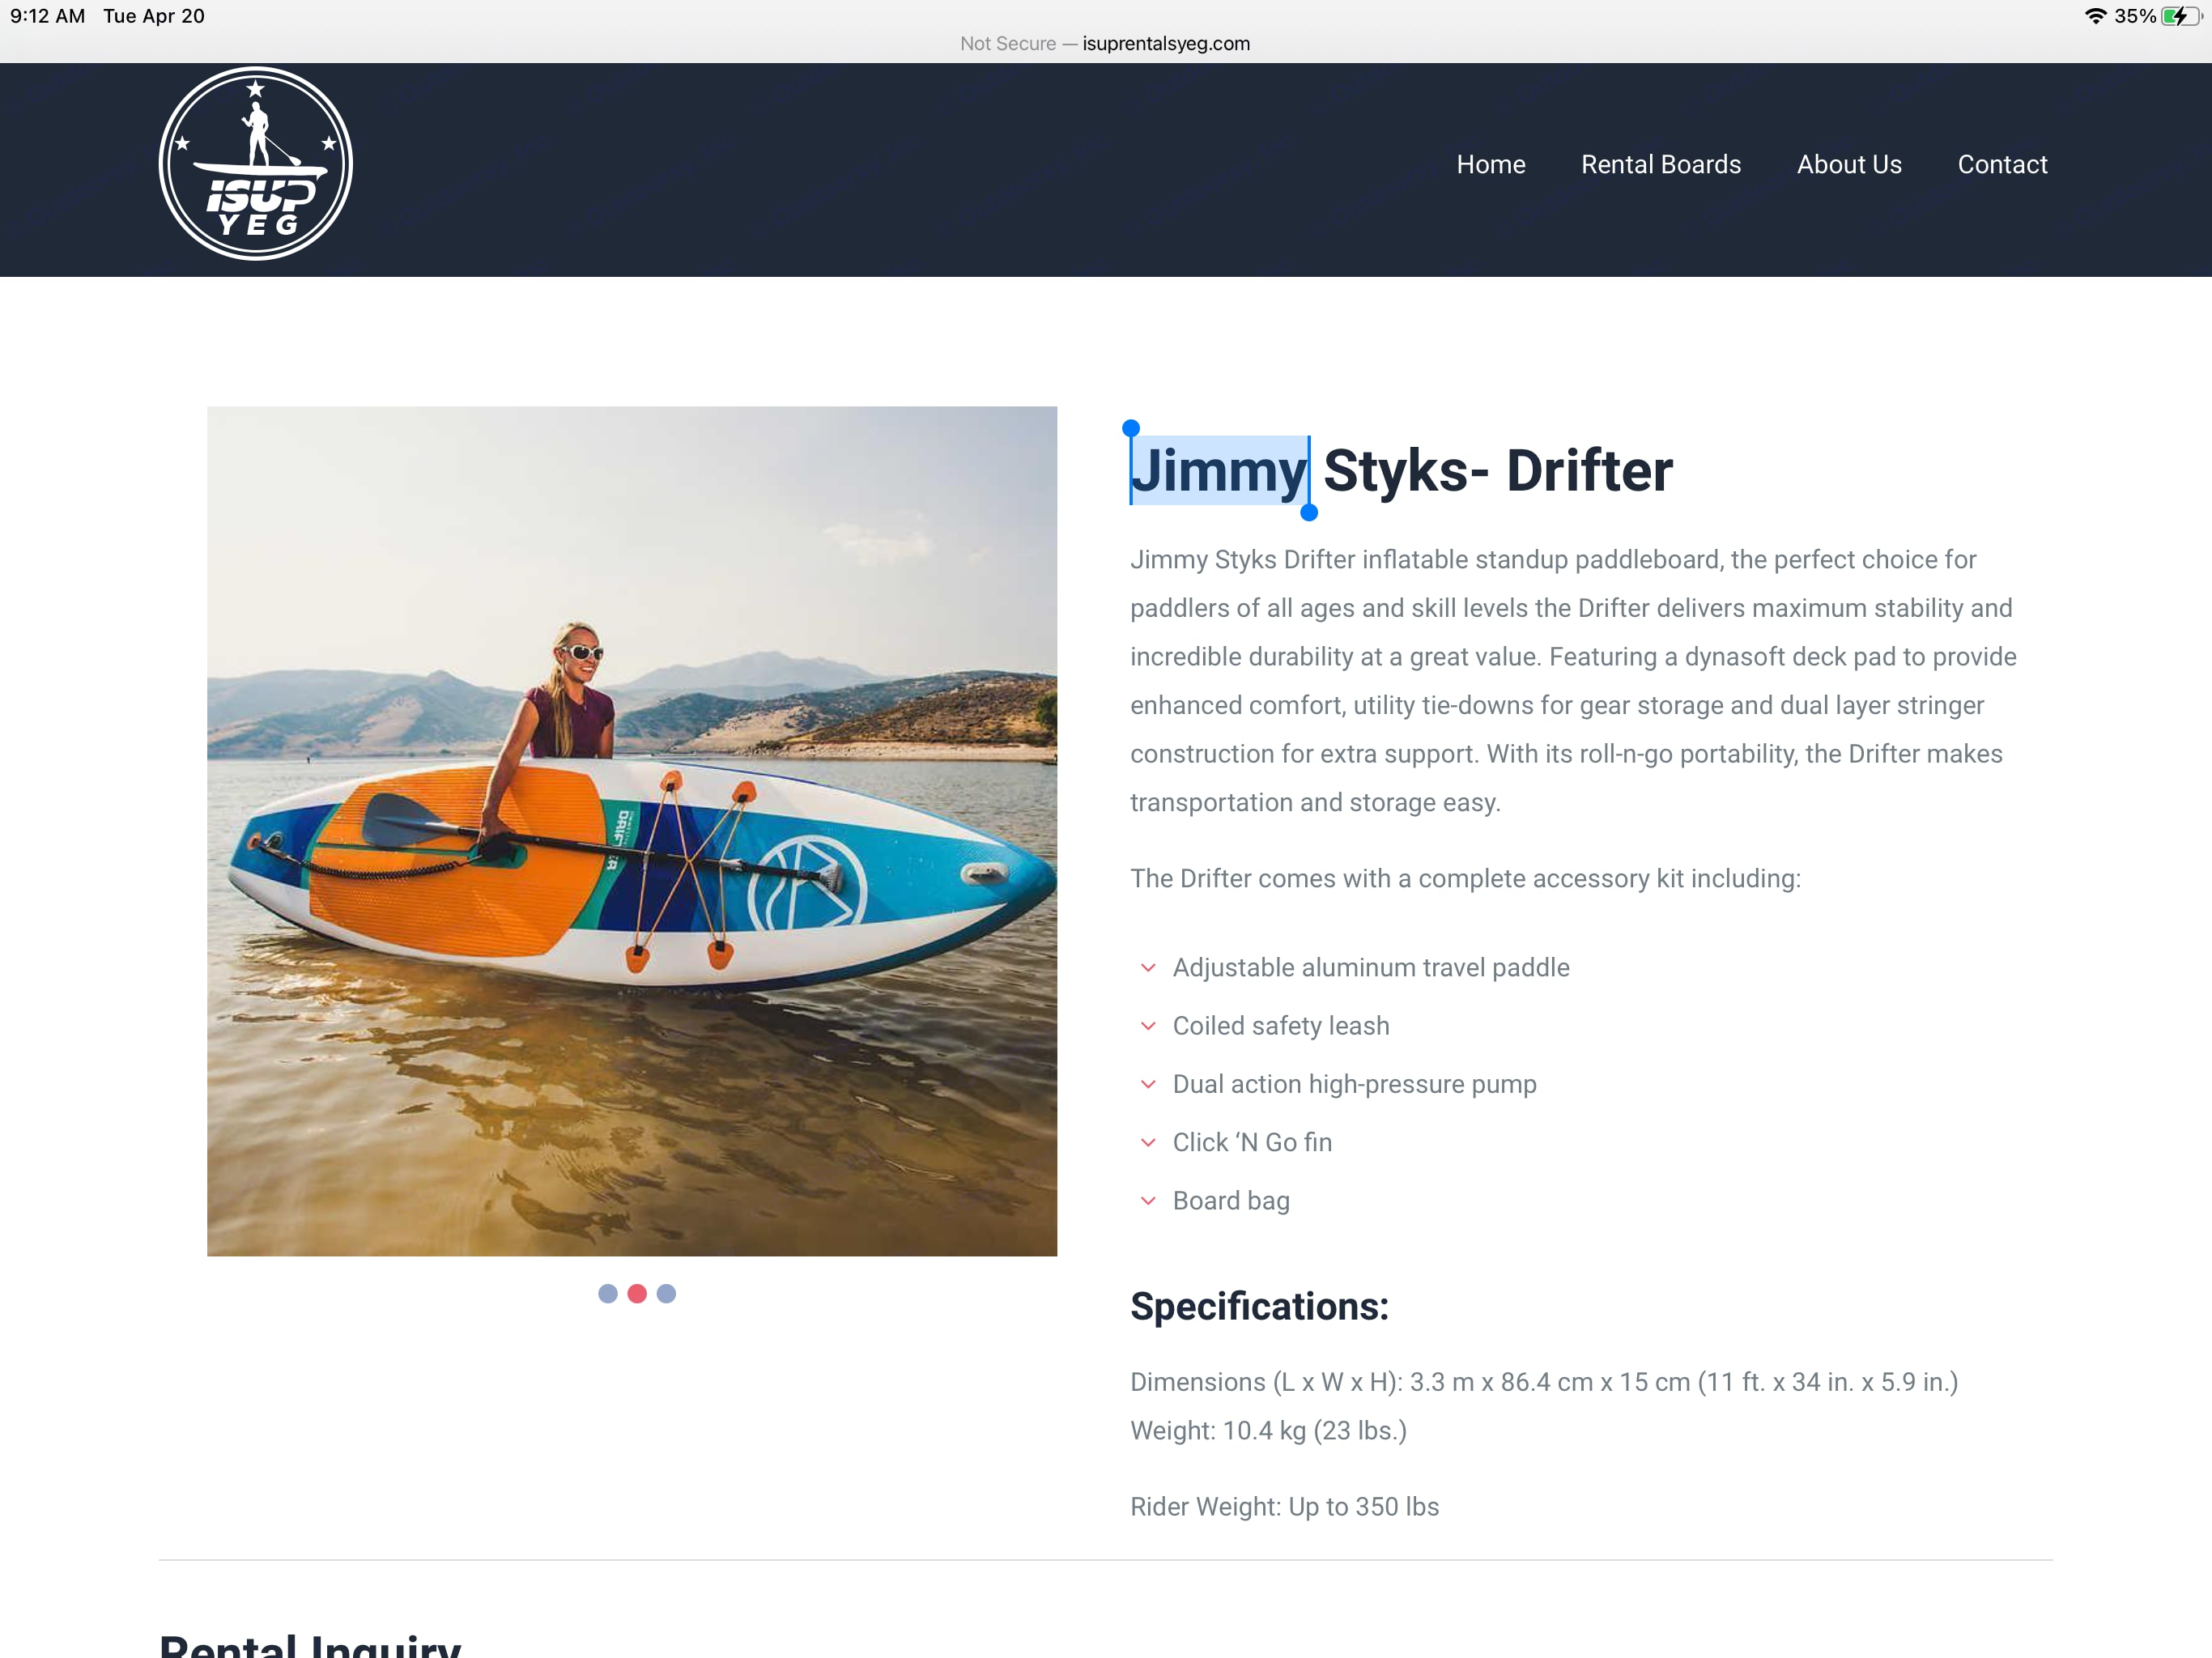 Inflatable Paddle Board- Jimmy Stykes 2021